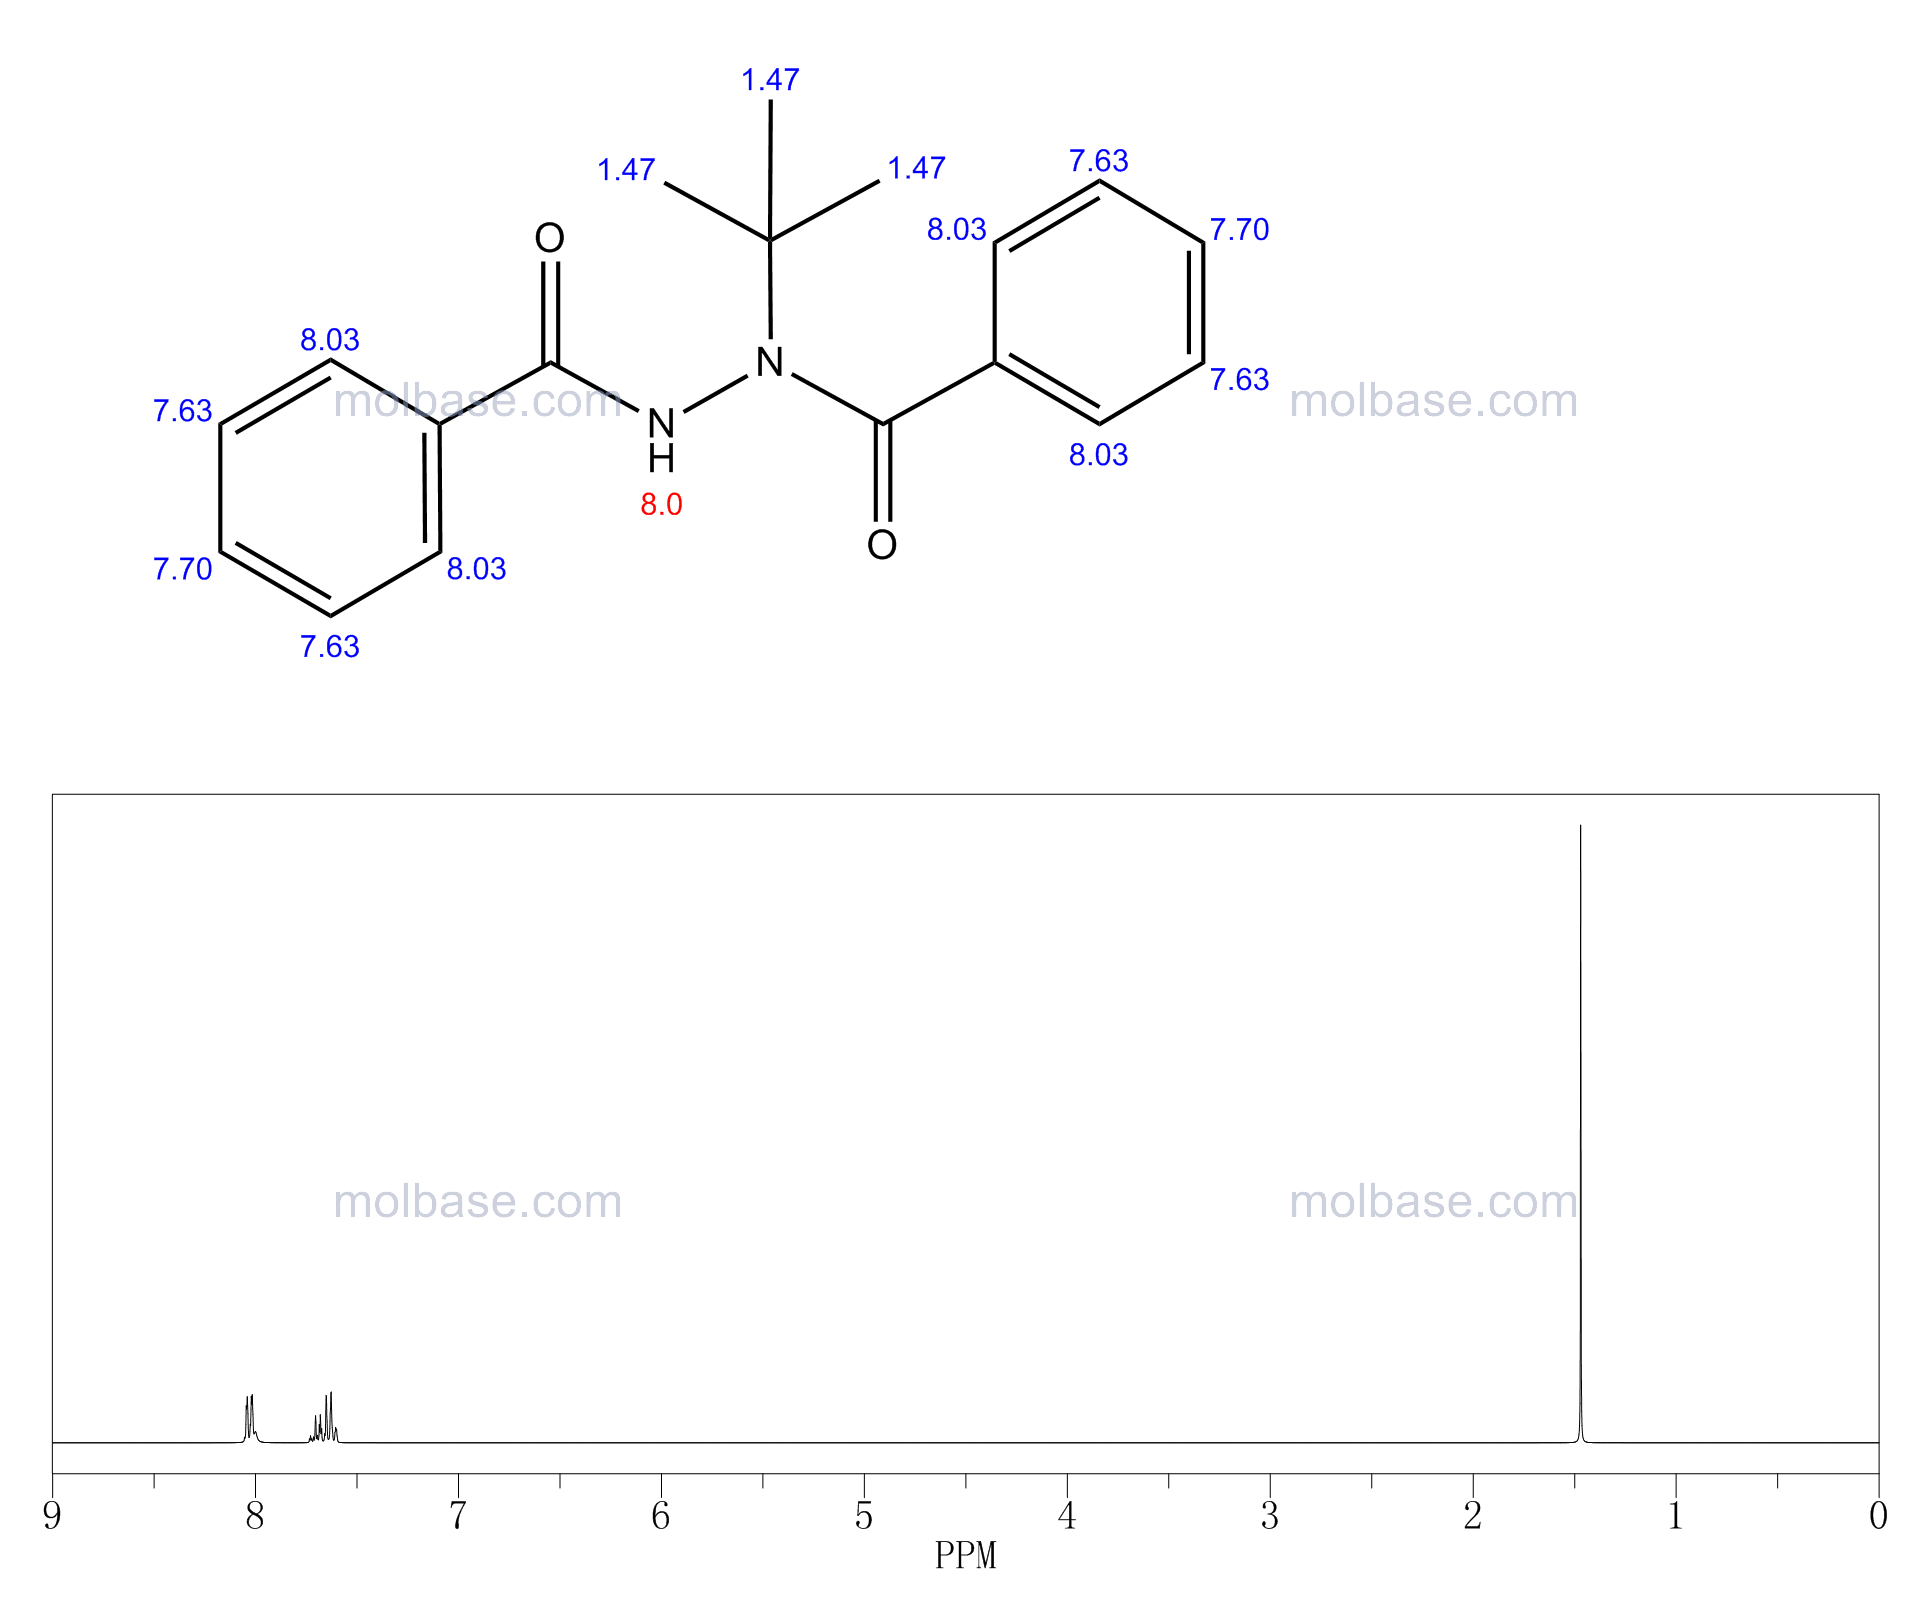 N'-benzoyl-N-(tert-butyl)benzohydrazide NMR spectra analysis, Chemical CAS NO. 112225-87-3 NMR spectral analysis, N'-benzoyl-N-(tert-butyl)benzohydrazide C-NMR spectrum